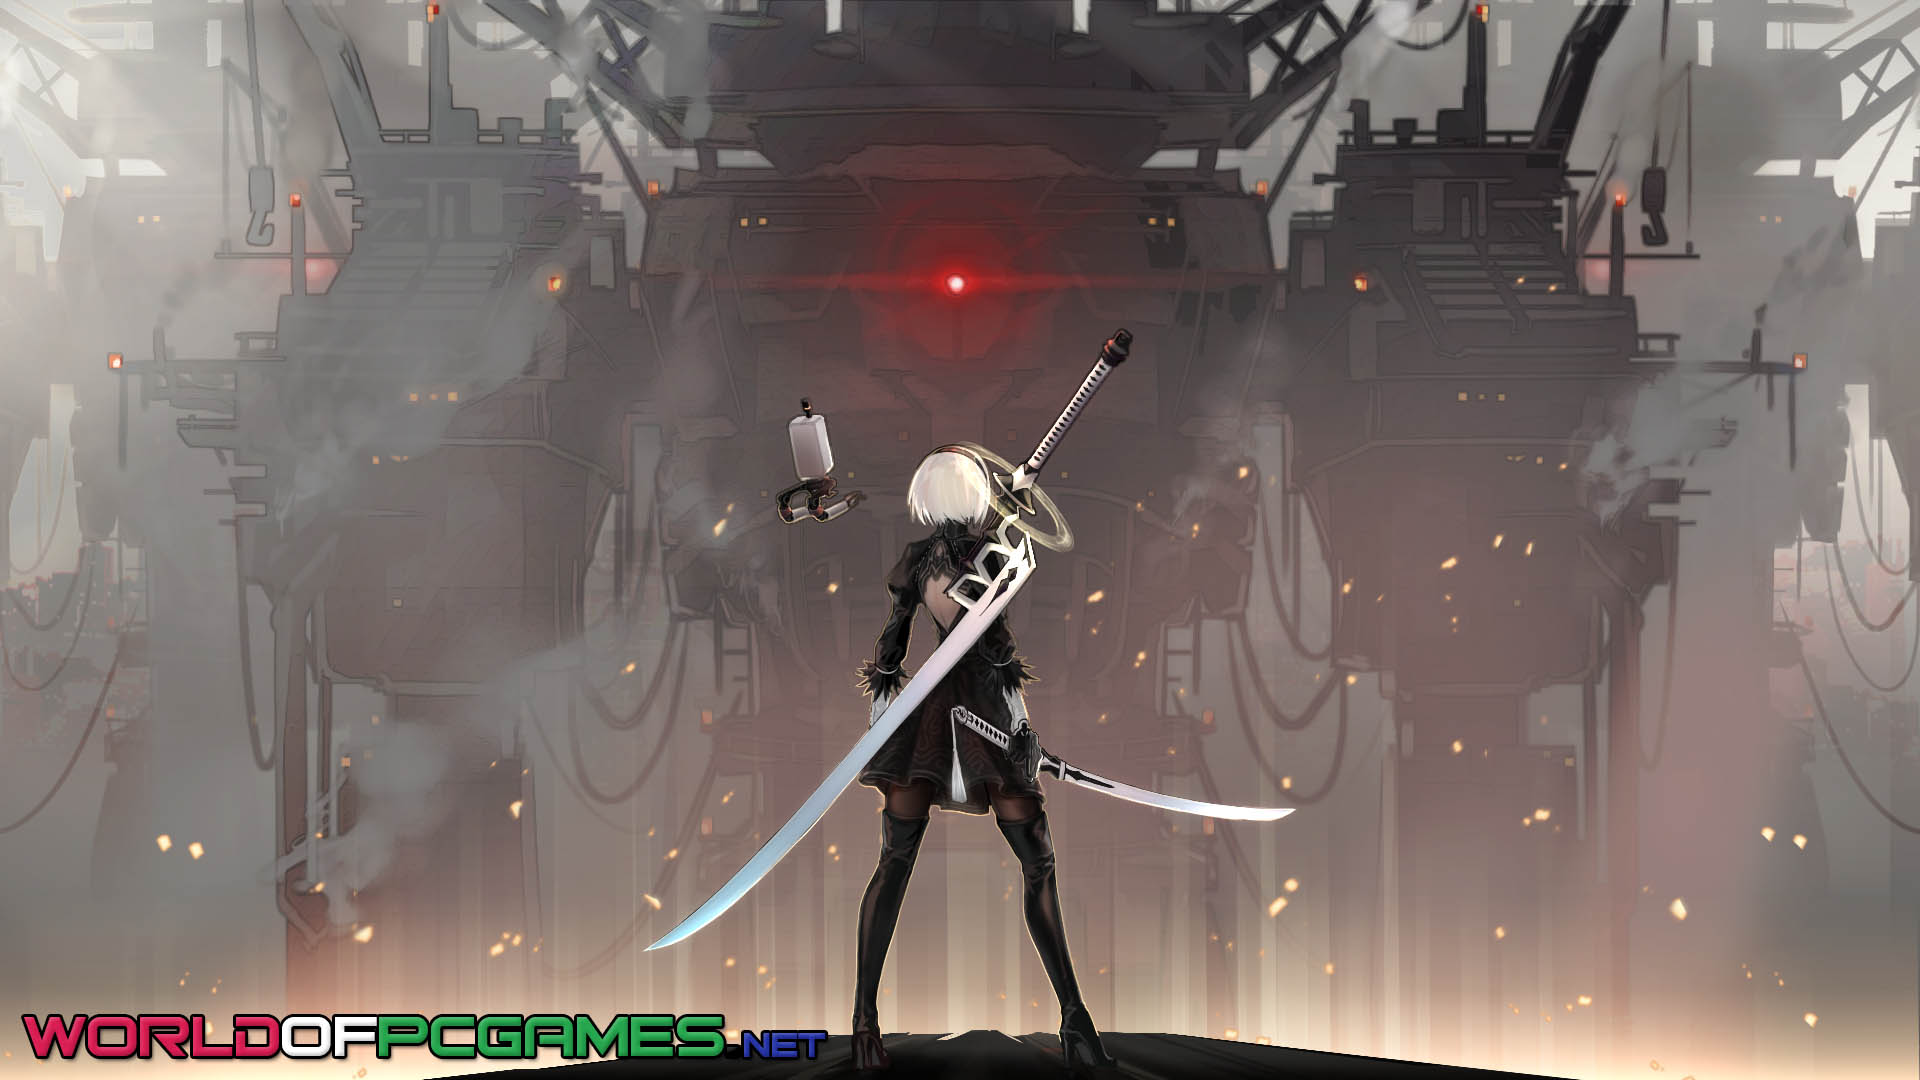 Nier Automata Repack With DLCs Free Download By Worldofpcgames.net